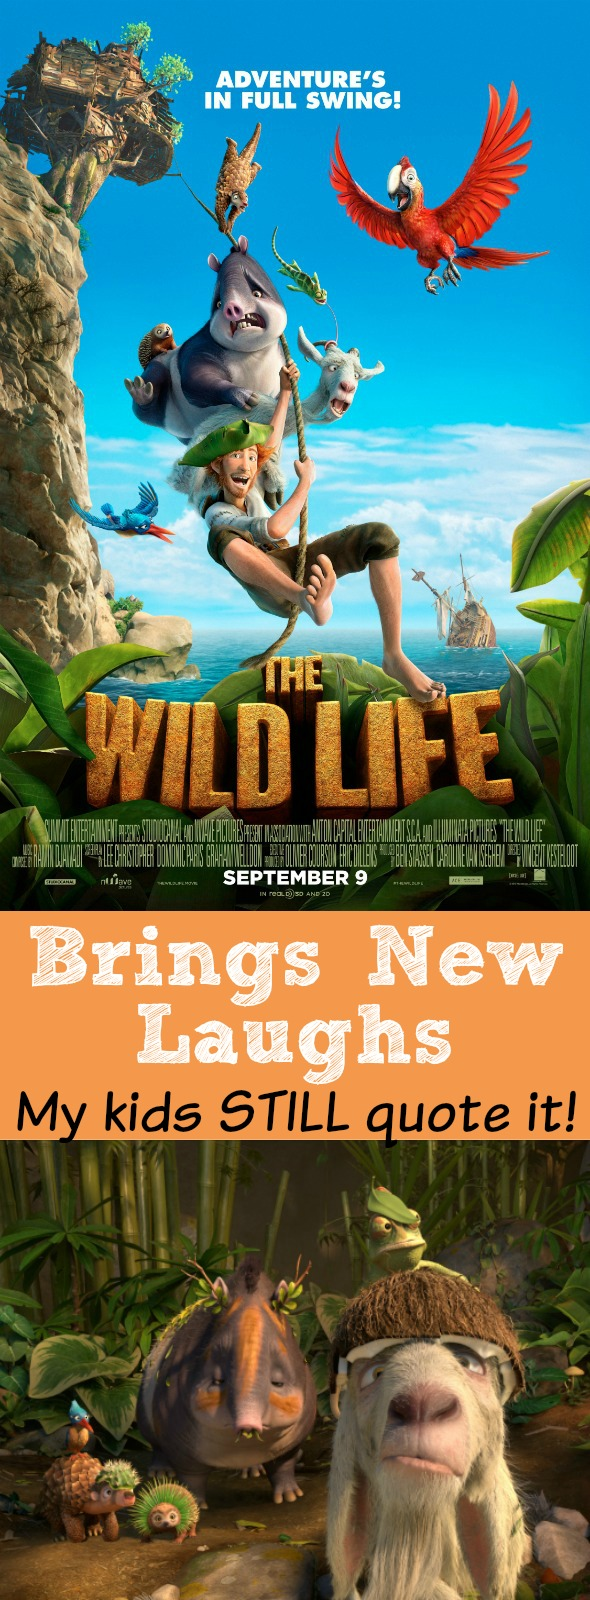 The Wild Life Brings New Laughs - my kids STILL quote it! #sponsored #thewildlife